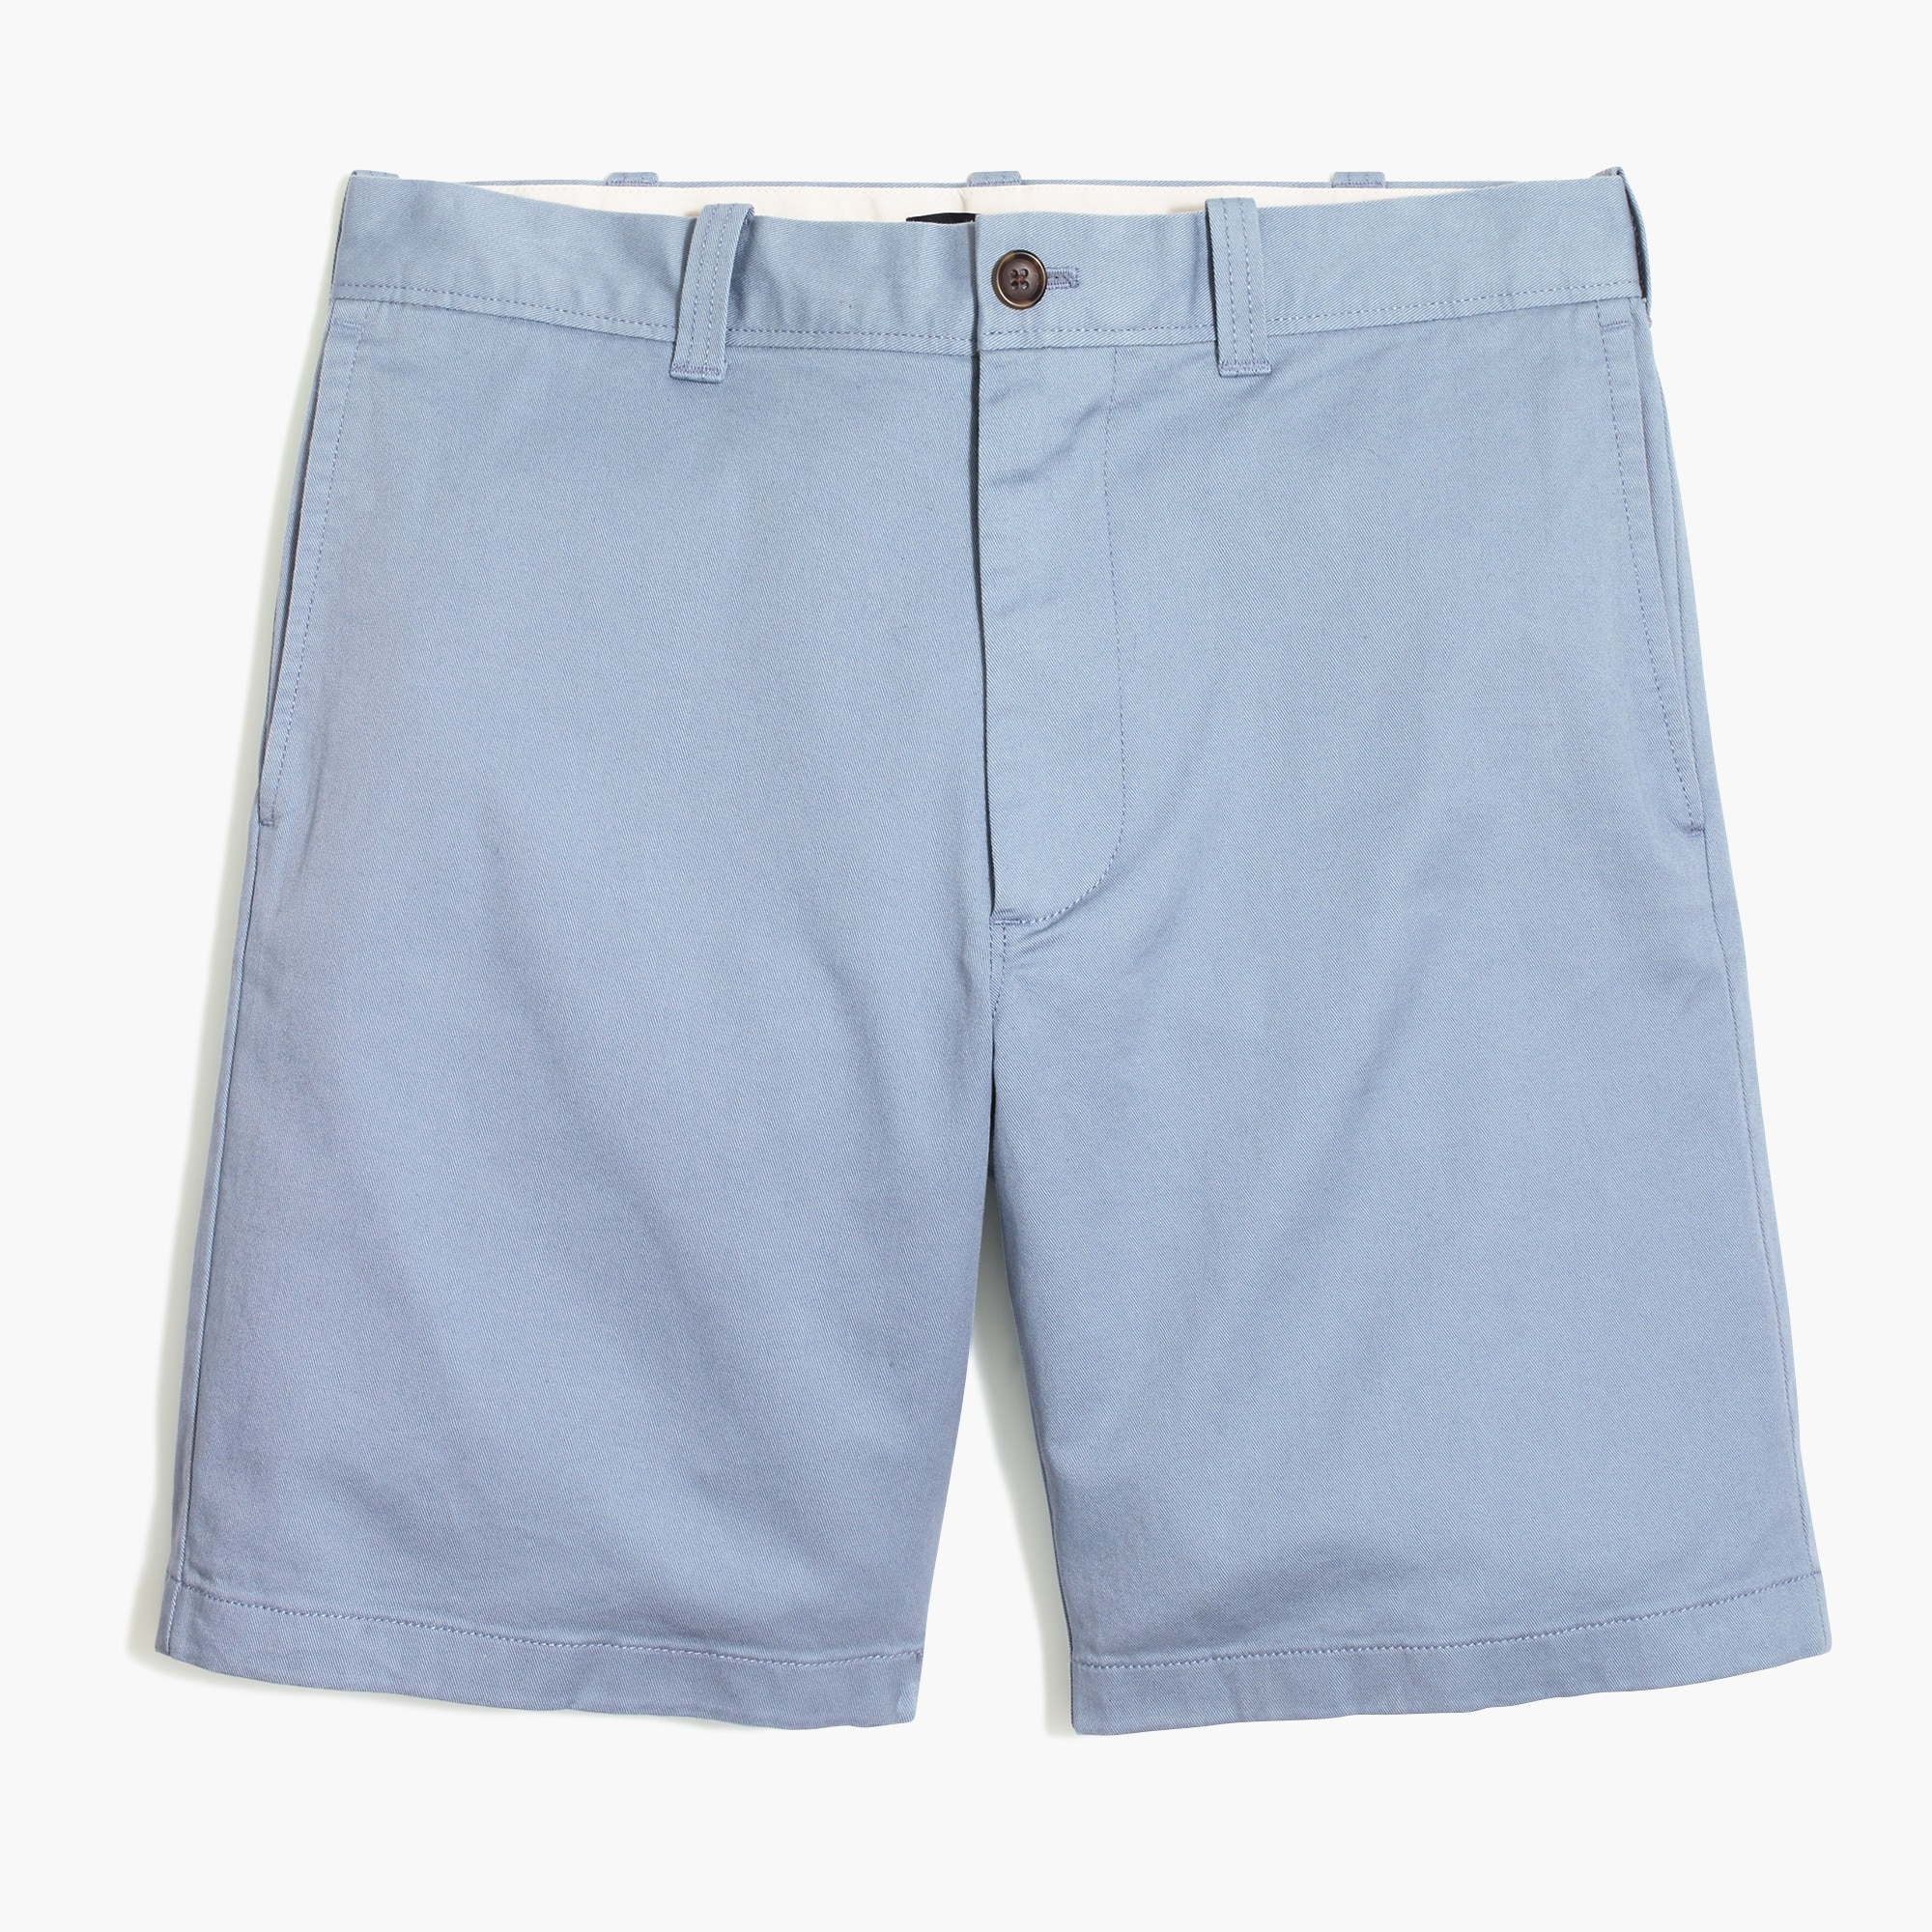 "Image 2 for 9"" Gramercy flex chino short"